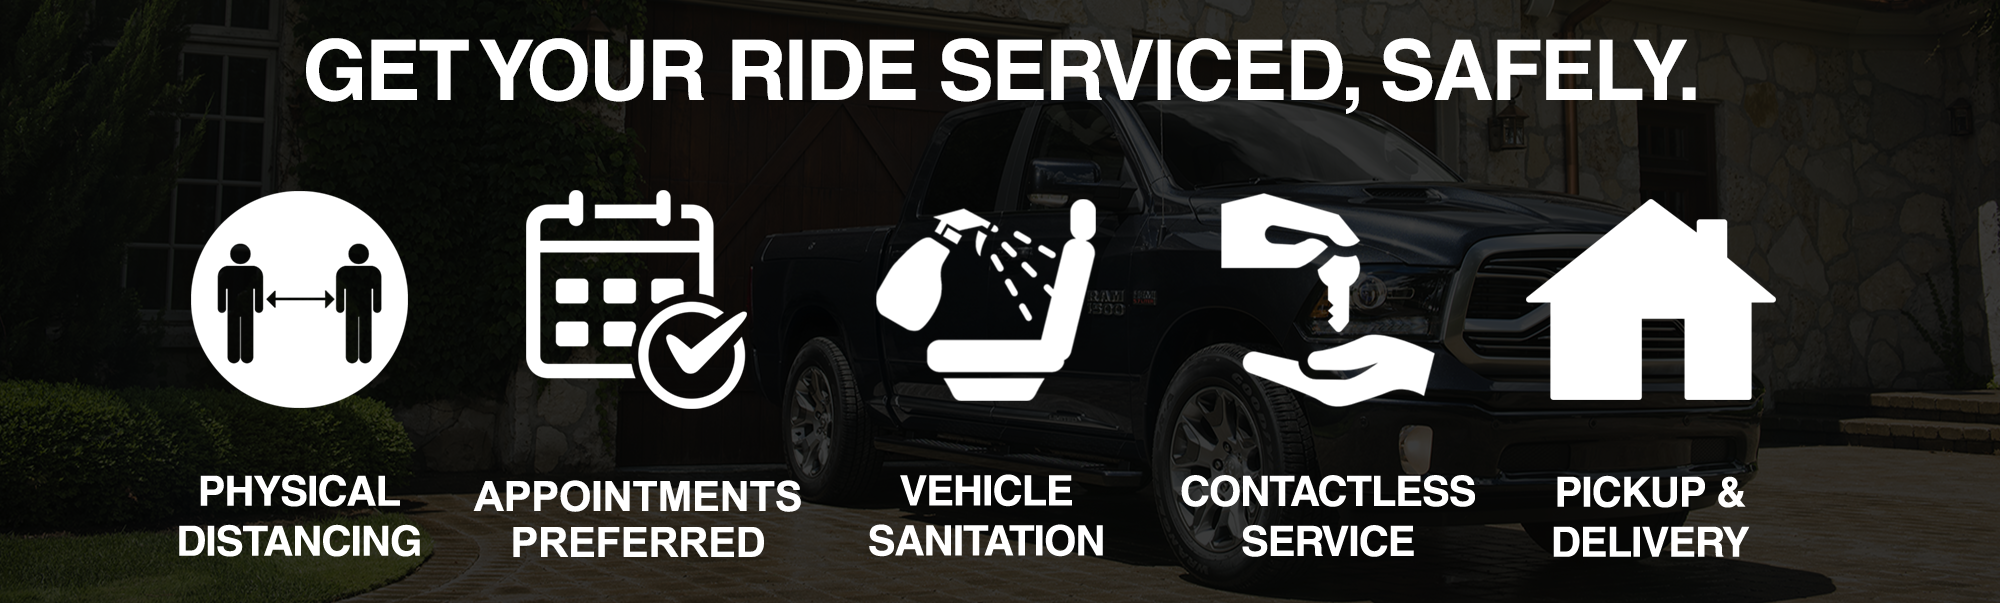 Get Your Ride Serviced Safely at Bustard Chrysler Stage 1